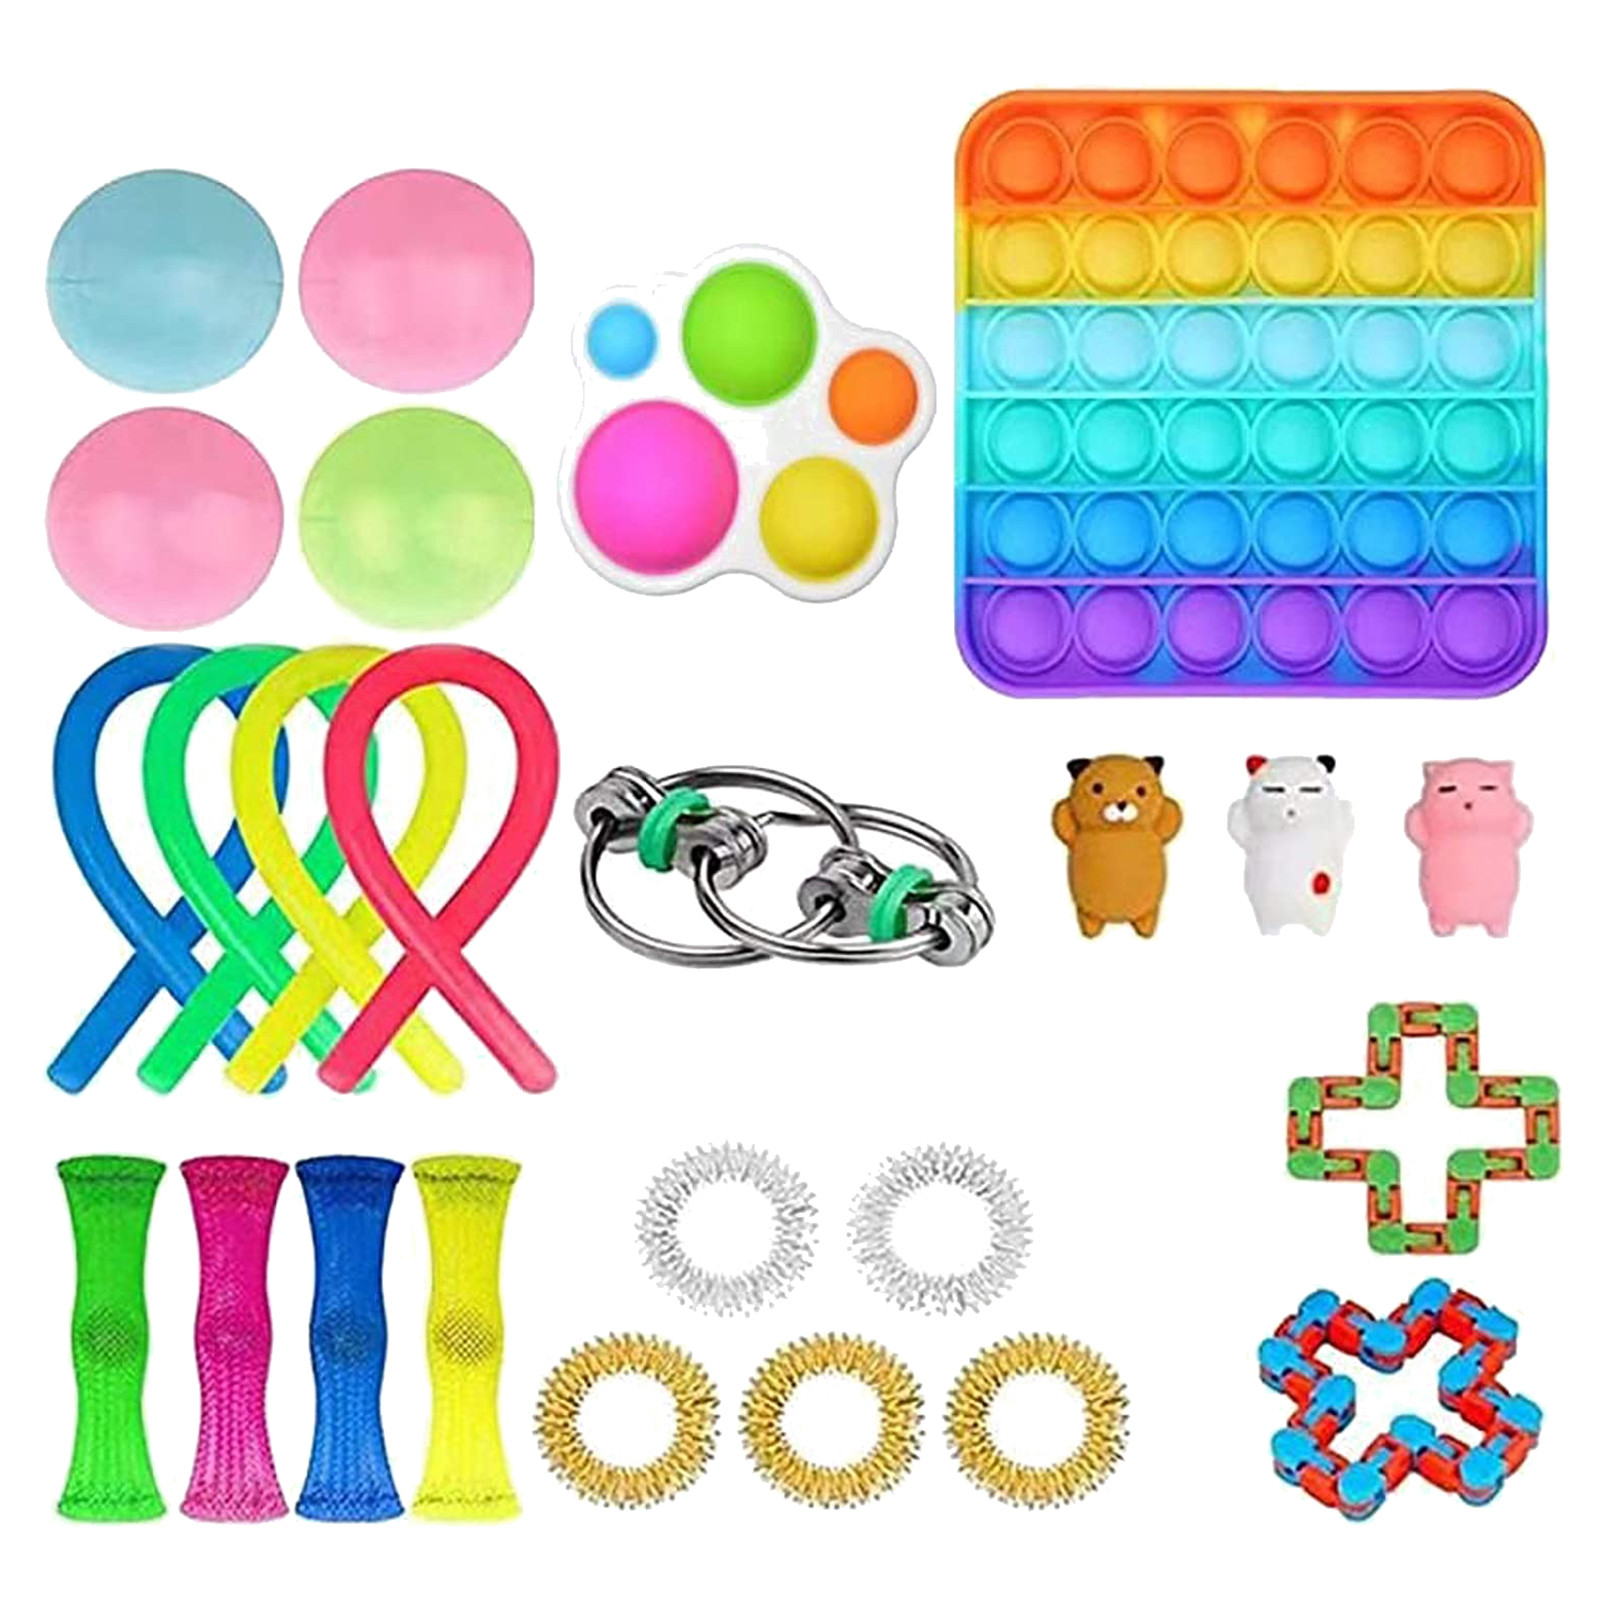 25 Pcs Fidges Fidget Toy Set Cheap Sensory Fidget Toys Pack for Kids and Adults Squishy